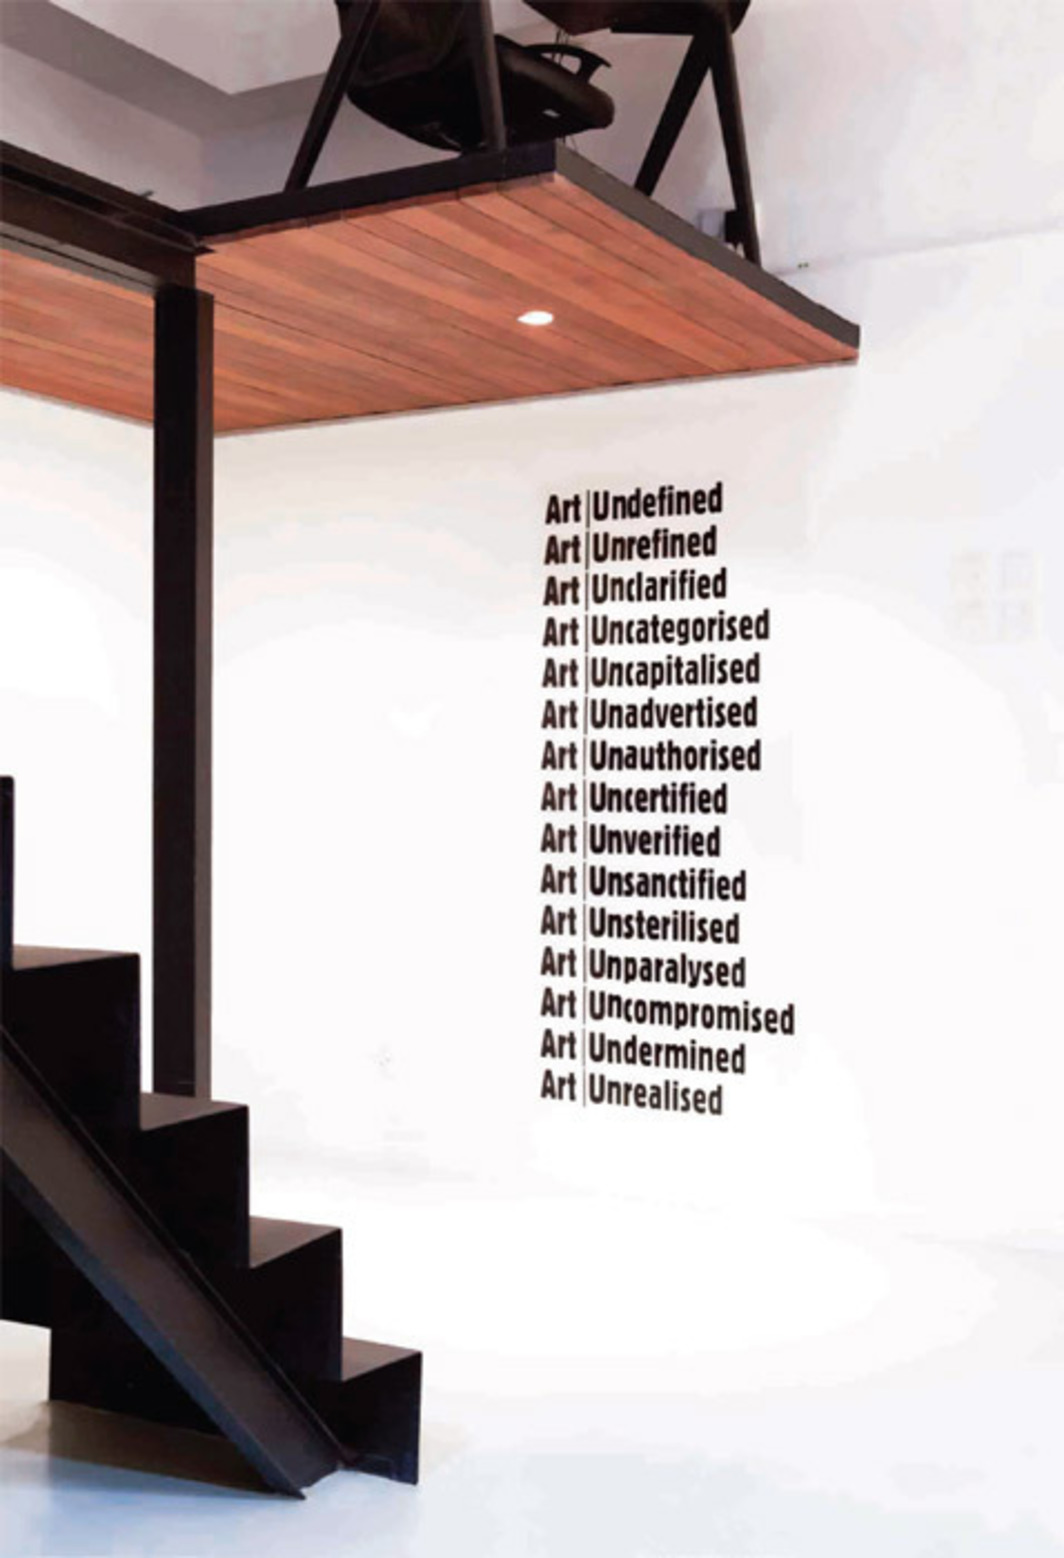 "Will Kwan, Untitled (Art | UN), 2011, self-adhesive vinyl, 57 7/8 x 26 3/8""."